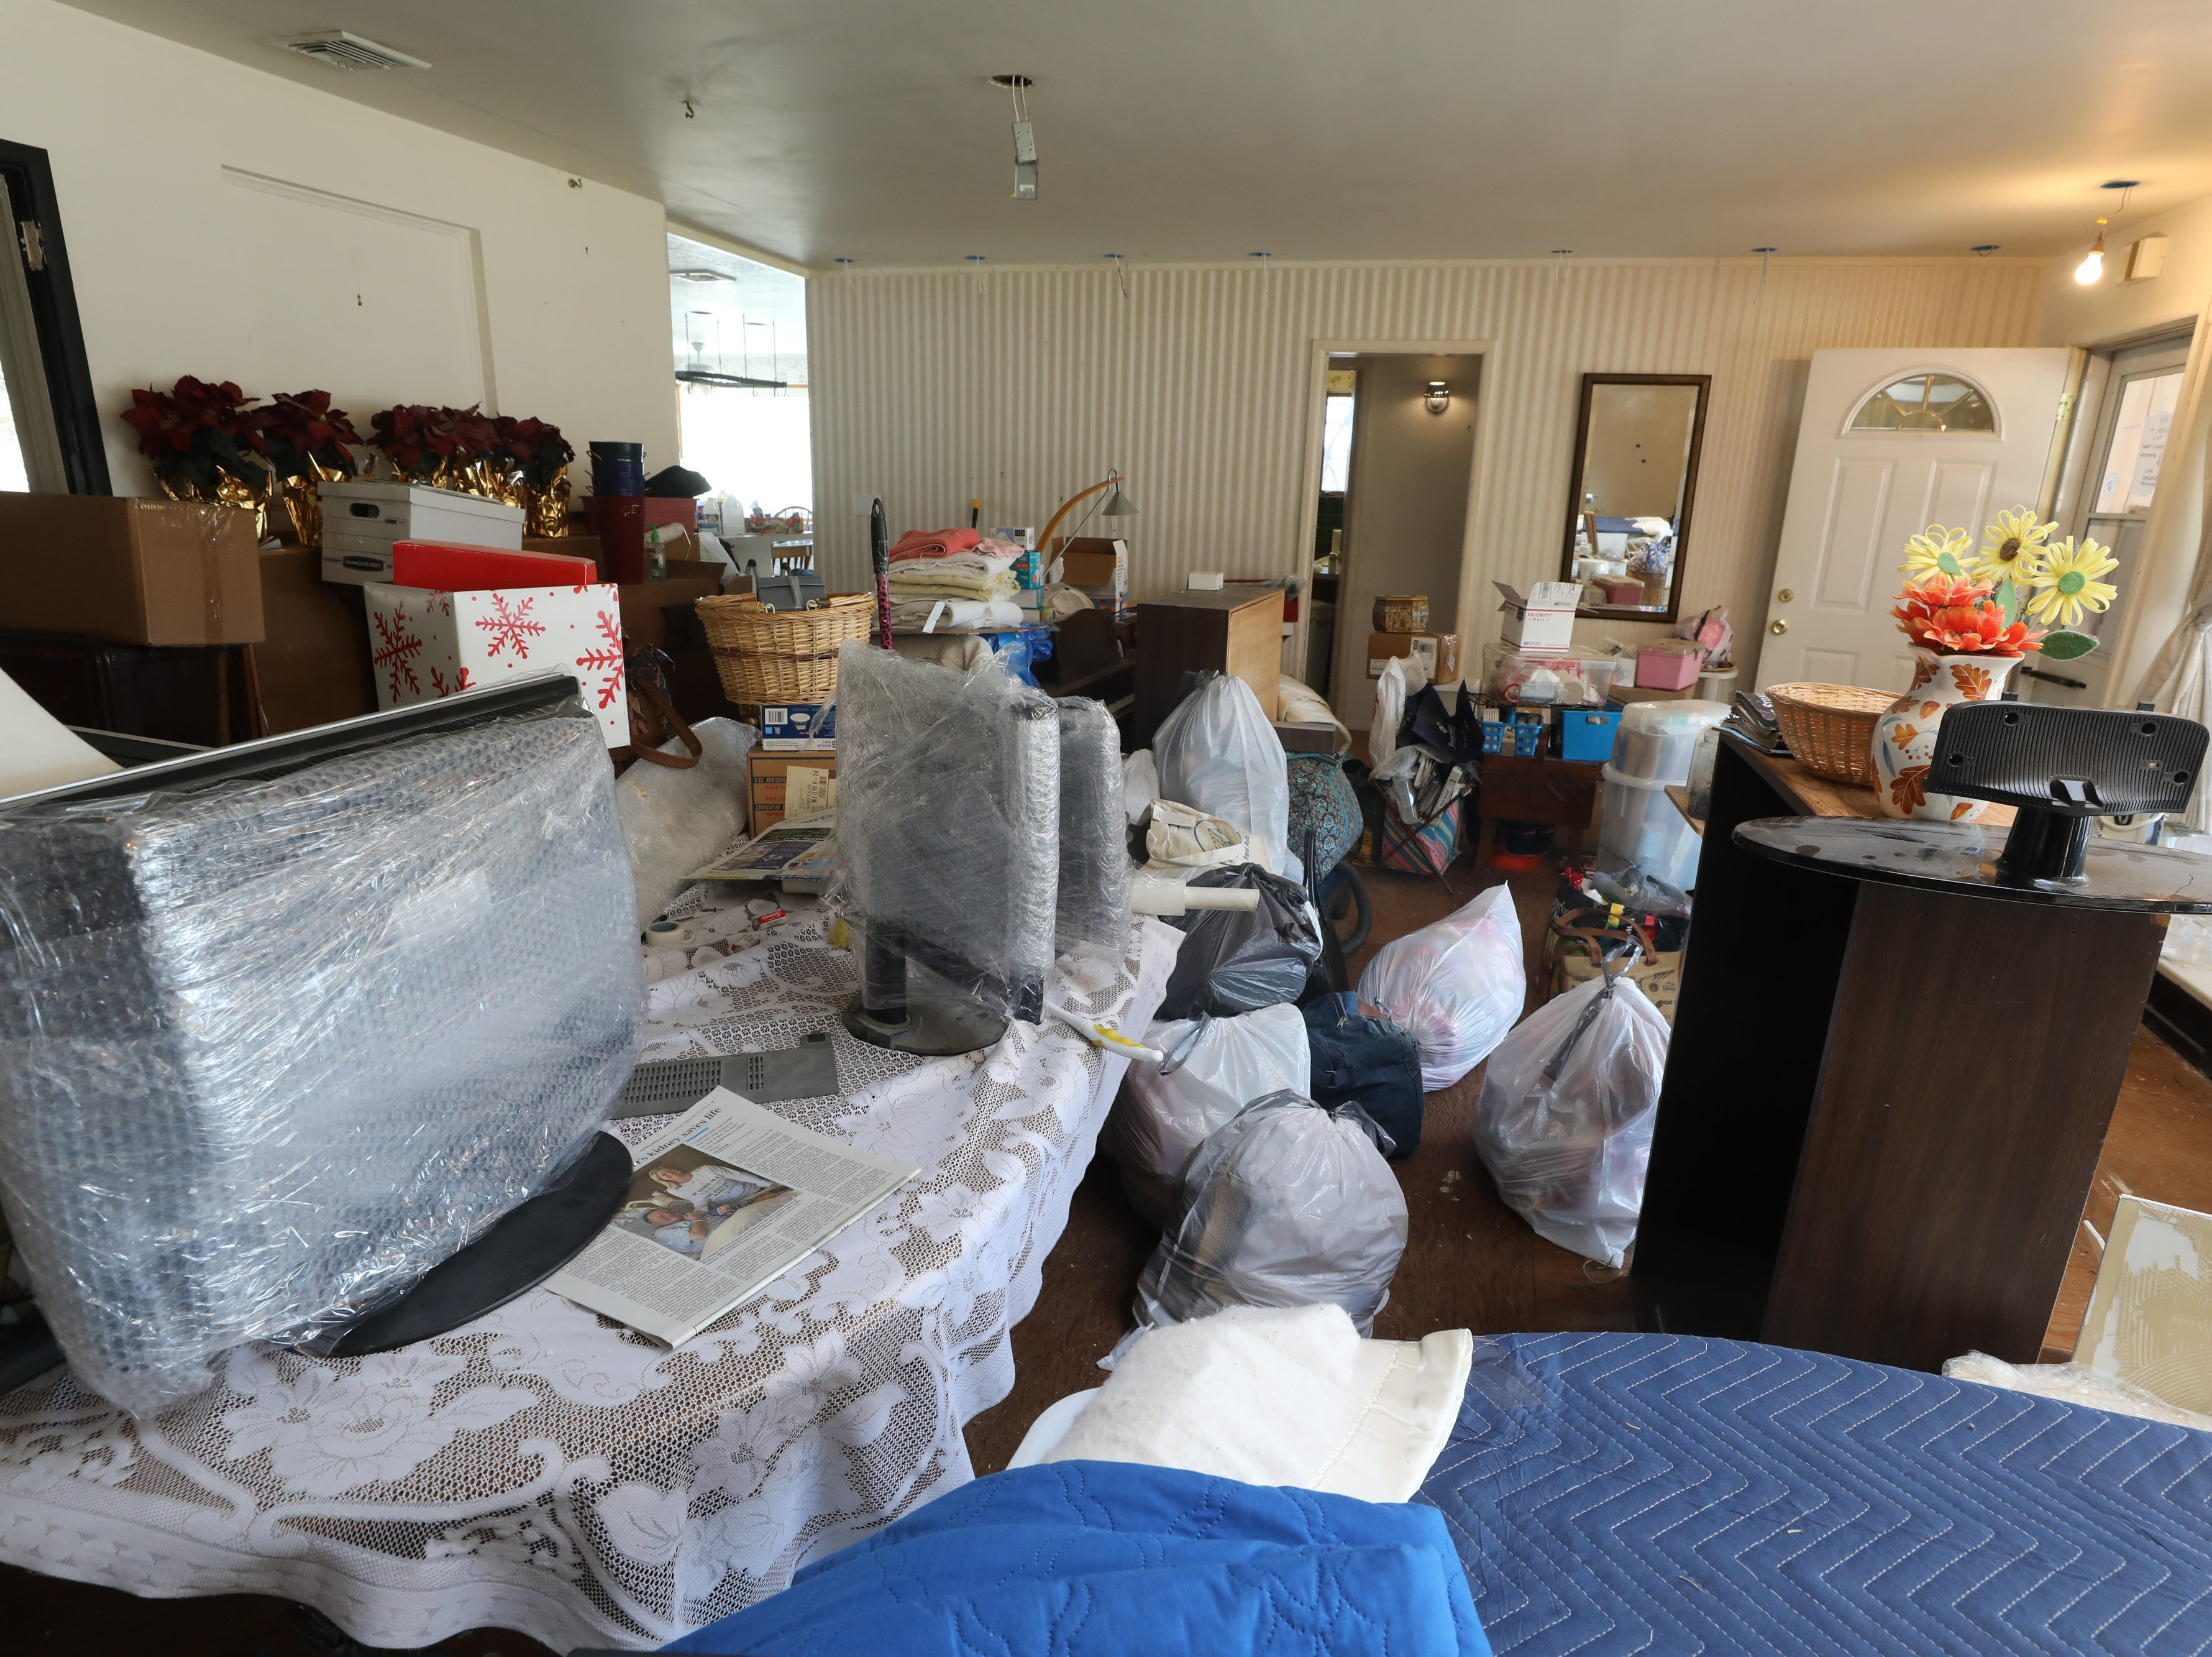 The dining room of the home Charles D'Alessandro and his sister have lived in for the past 15 years. He is being evicted from the home on March 19, 2019, after failing to pay the mortgage for the past 10 years.